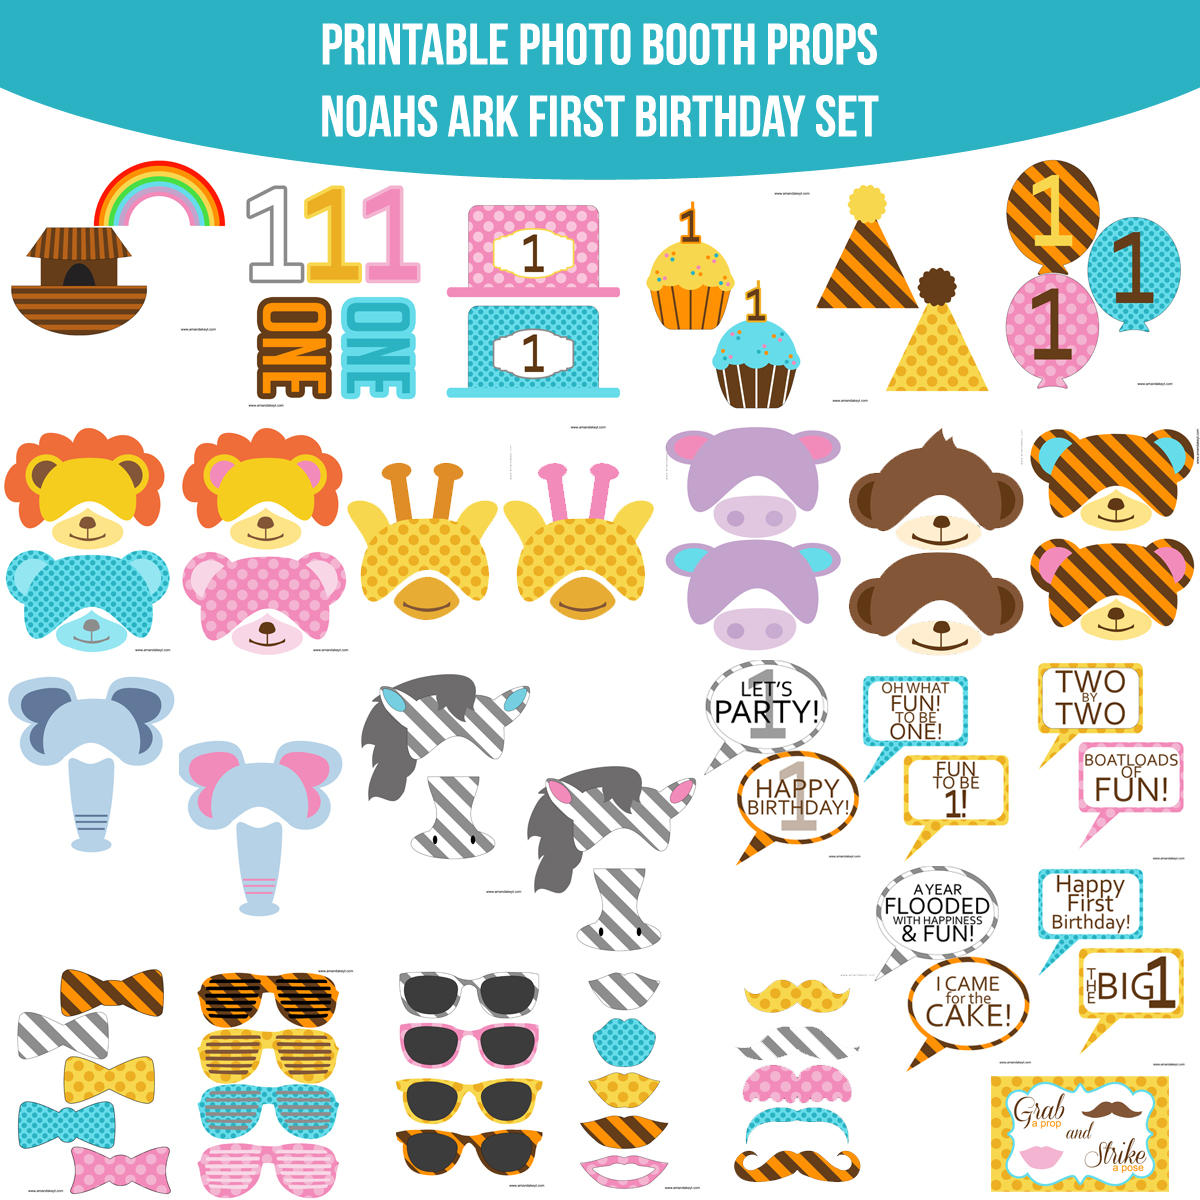 See the Set - To View The Whole Noahs Ark First Birthday Printable Photo Booth Prop Set Click Here